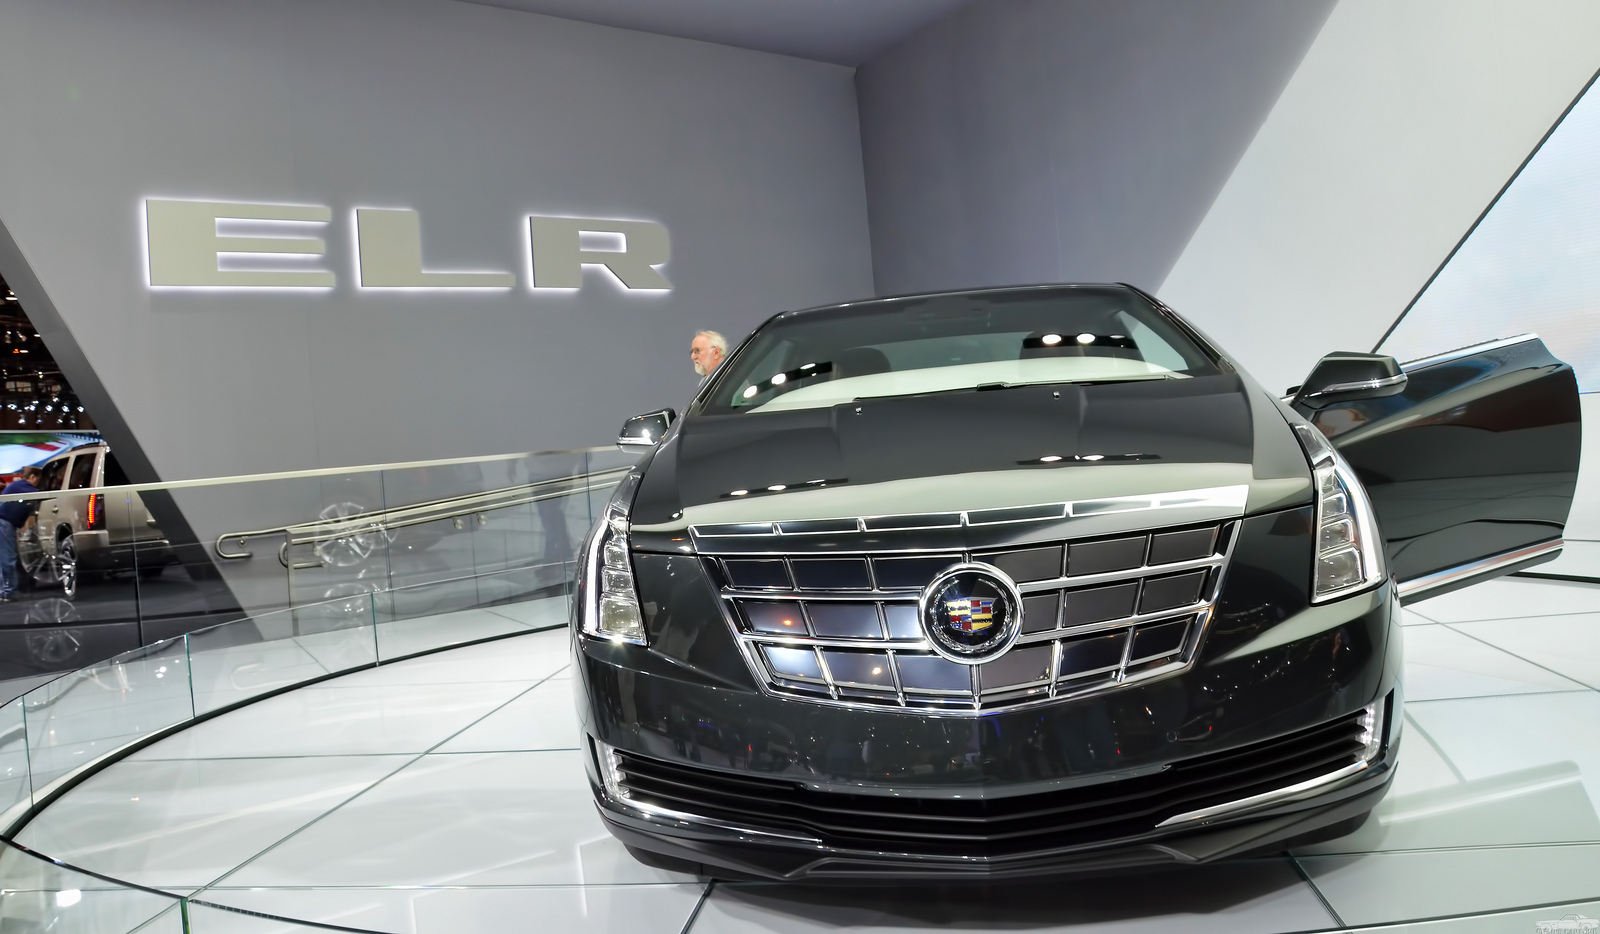 Rippy Cadillac ELR Puts Energy Control at Driver's Fingertips Free Download Image Of